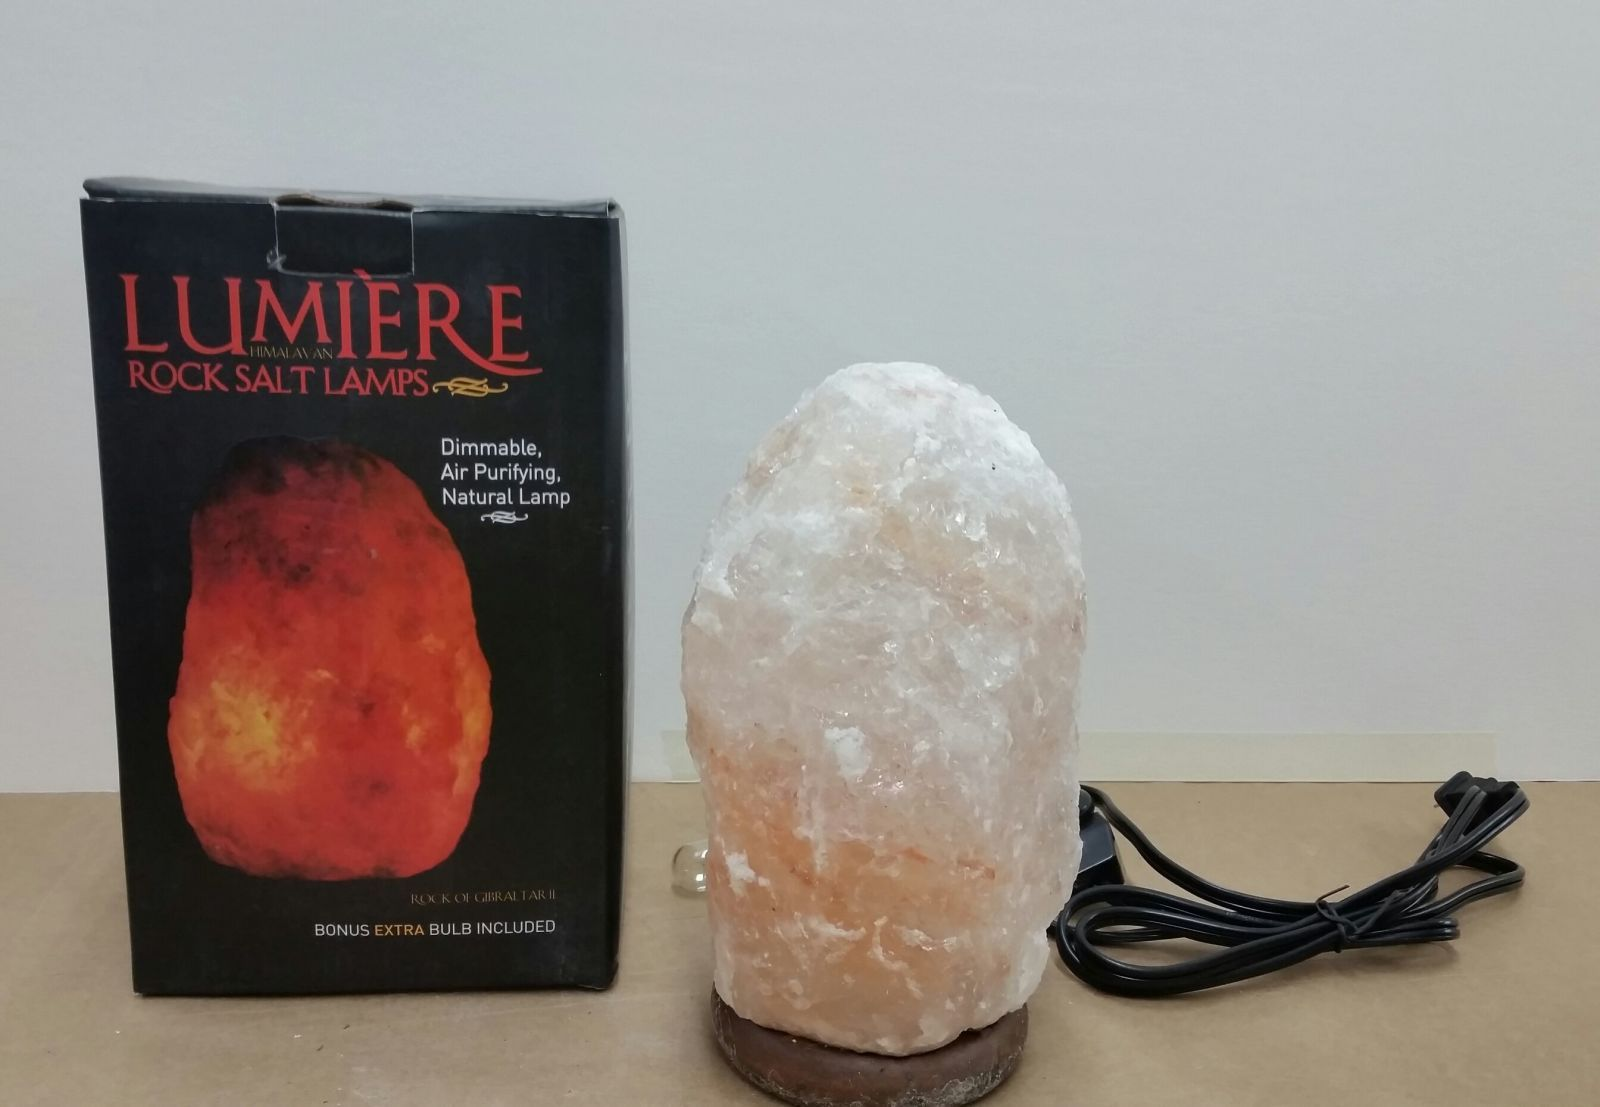 Recalled Salt Lamps Brilliant Himalayan Rock Salt Lamps Recalled For Fire Electric Shock Risks 2018